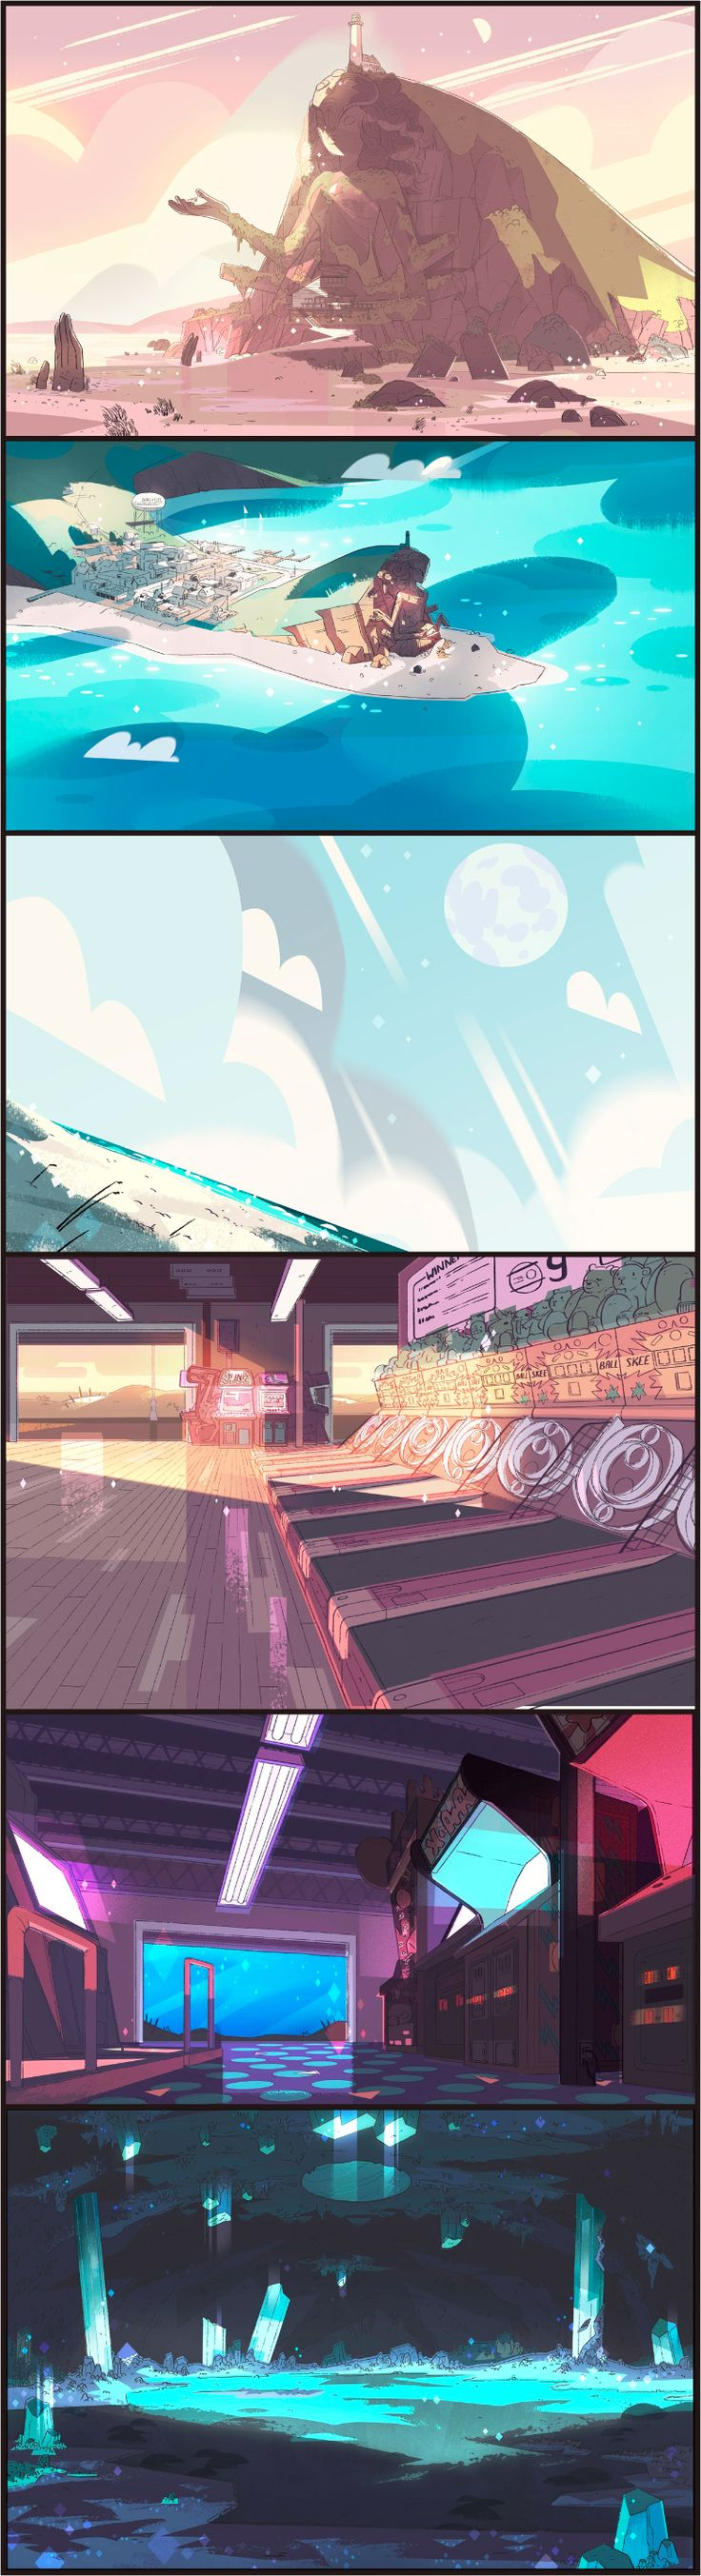 "A selection of Backgrounds from the Steven Universe episode: ""Arcade Mania."" Art Direction: Kevin Dart; Design: Emily Walus, Steven Sugar; Paint: Jasmin Lai, Elle Michalka, Amanda Winterstein, Tiffany Ford."